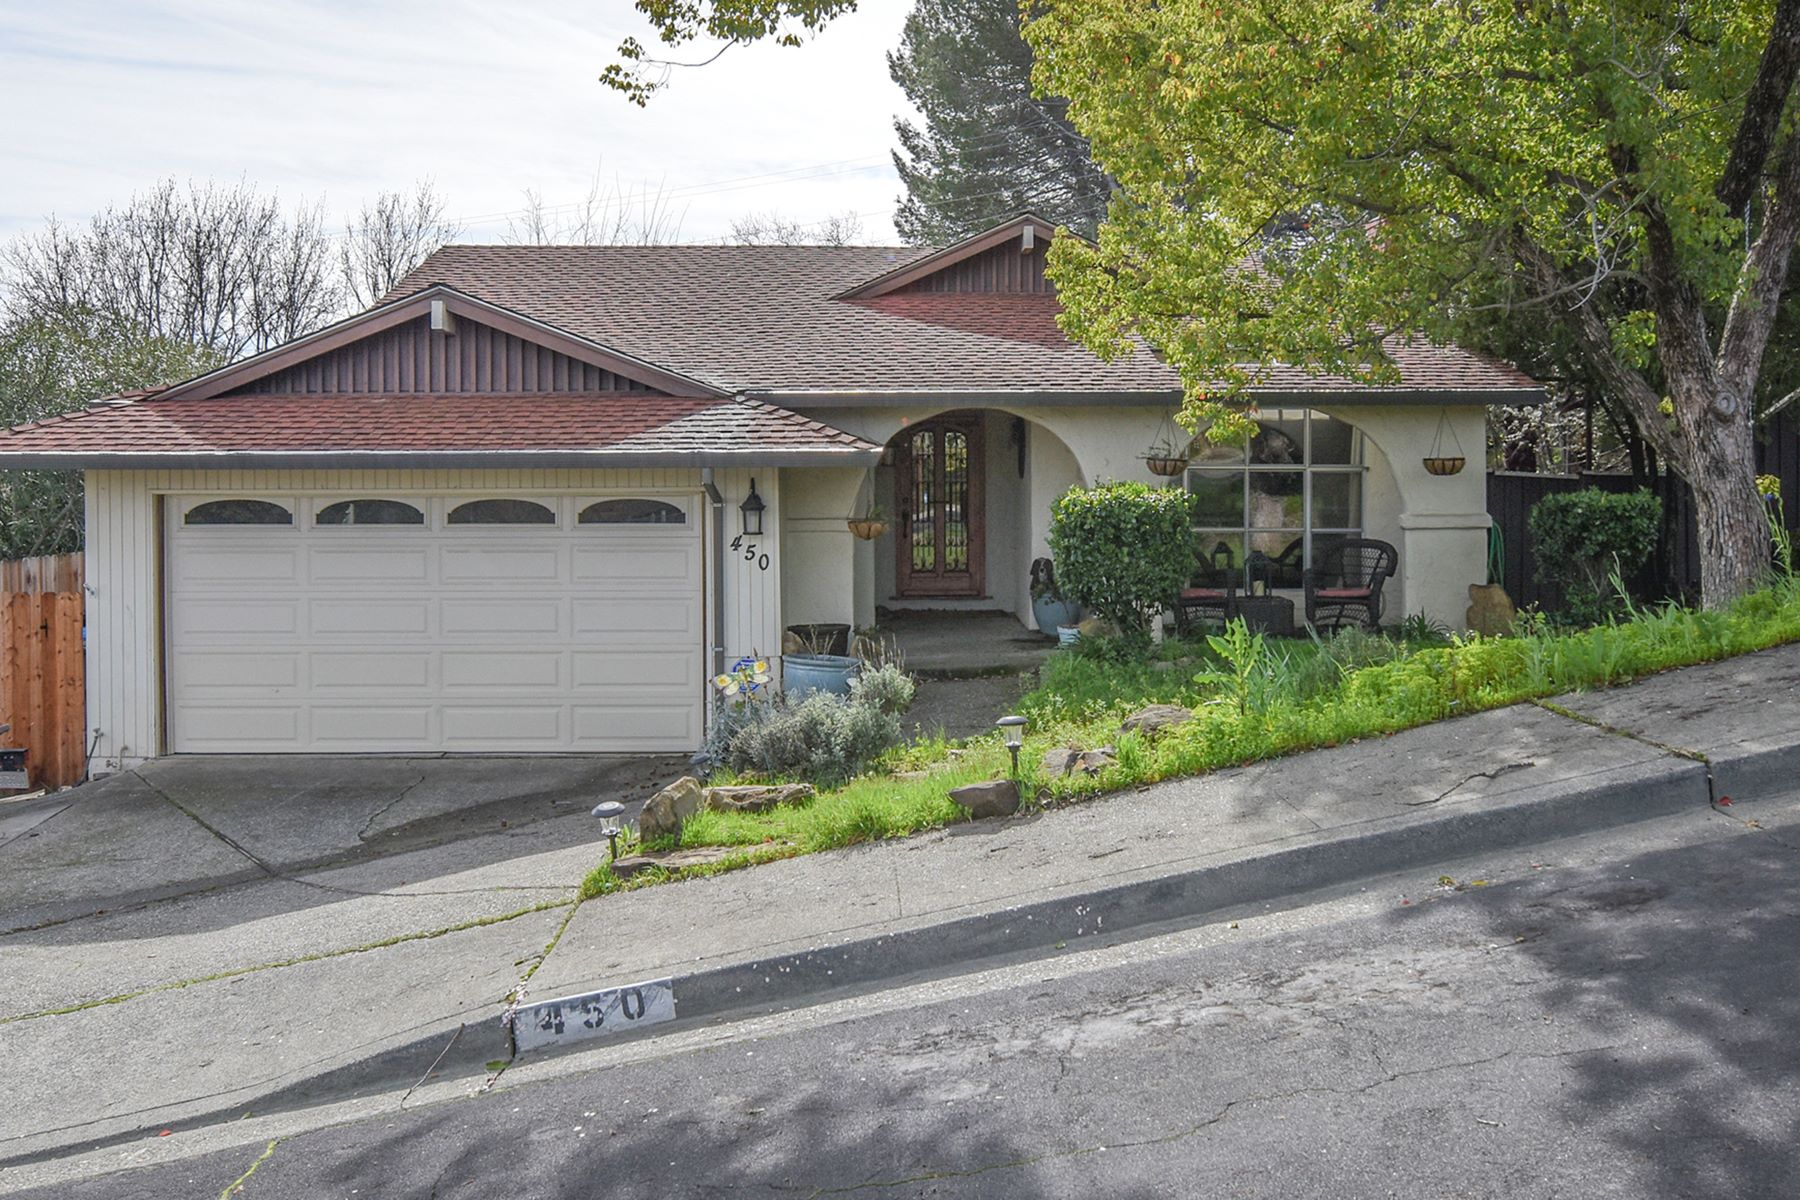 Single Family Home for Sale at Inviting Ranch Style Home Featuring Arched Doorways 450 La Cresta Drive Vacaville, California 95688 United States